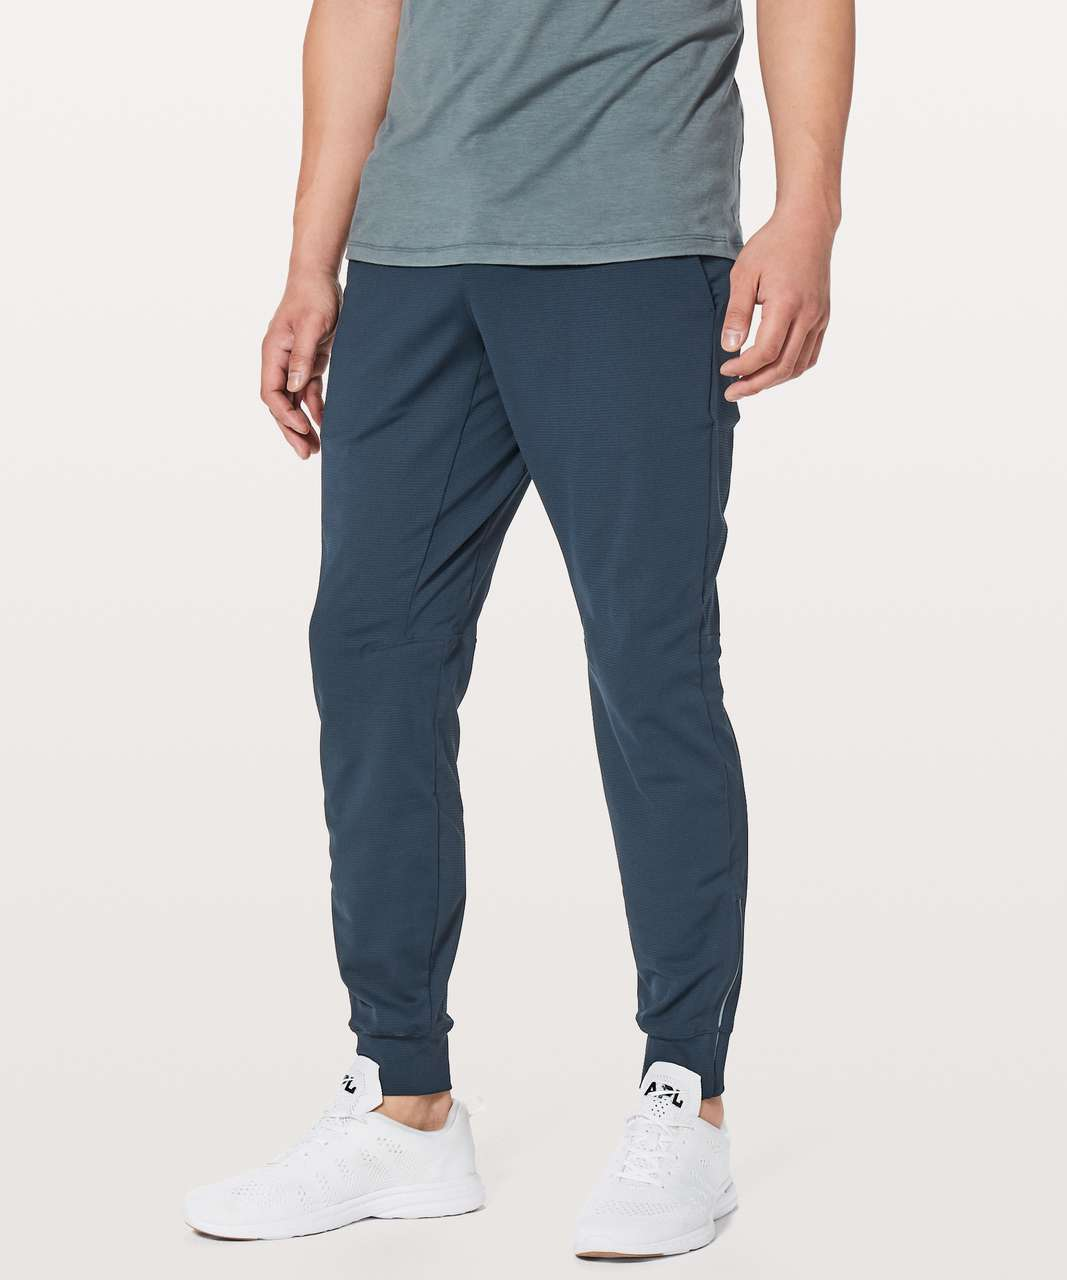 "Lululemon Warped Sense Pant *30"" - True Navy"